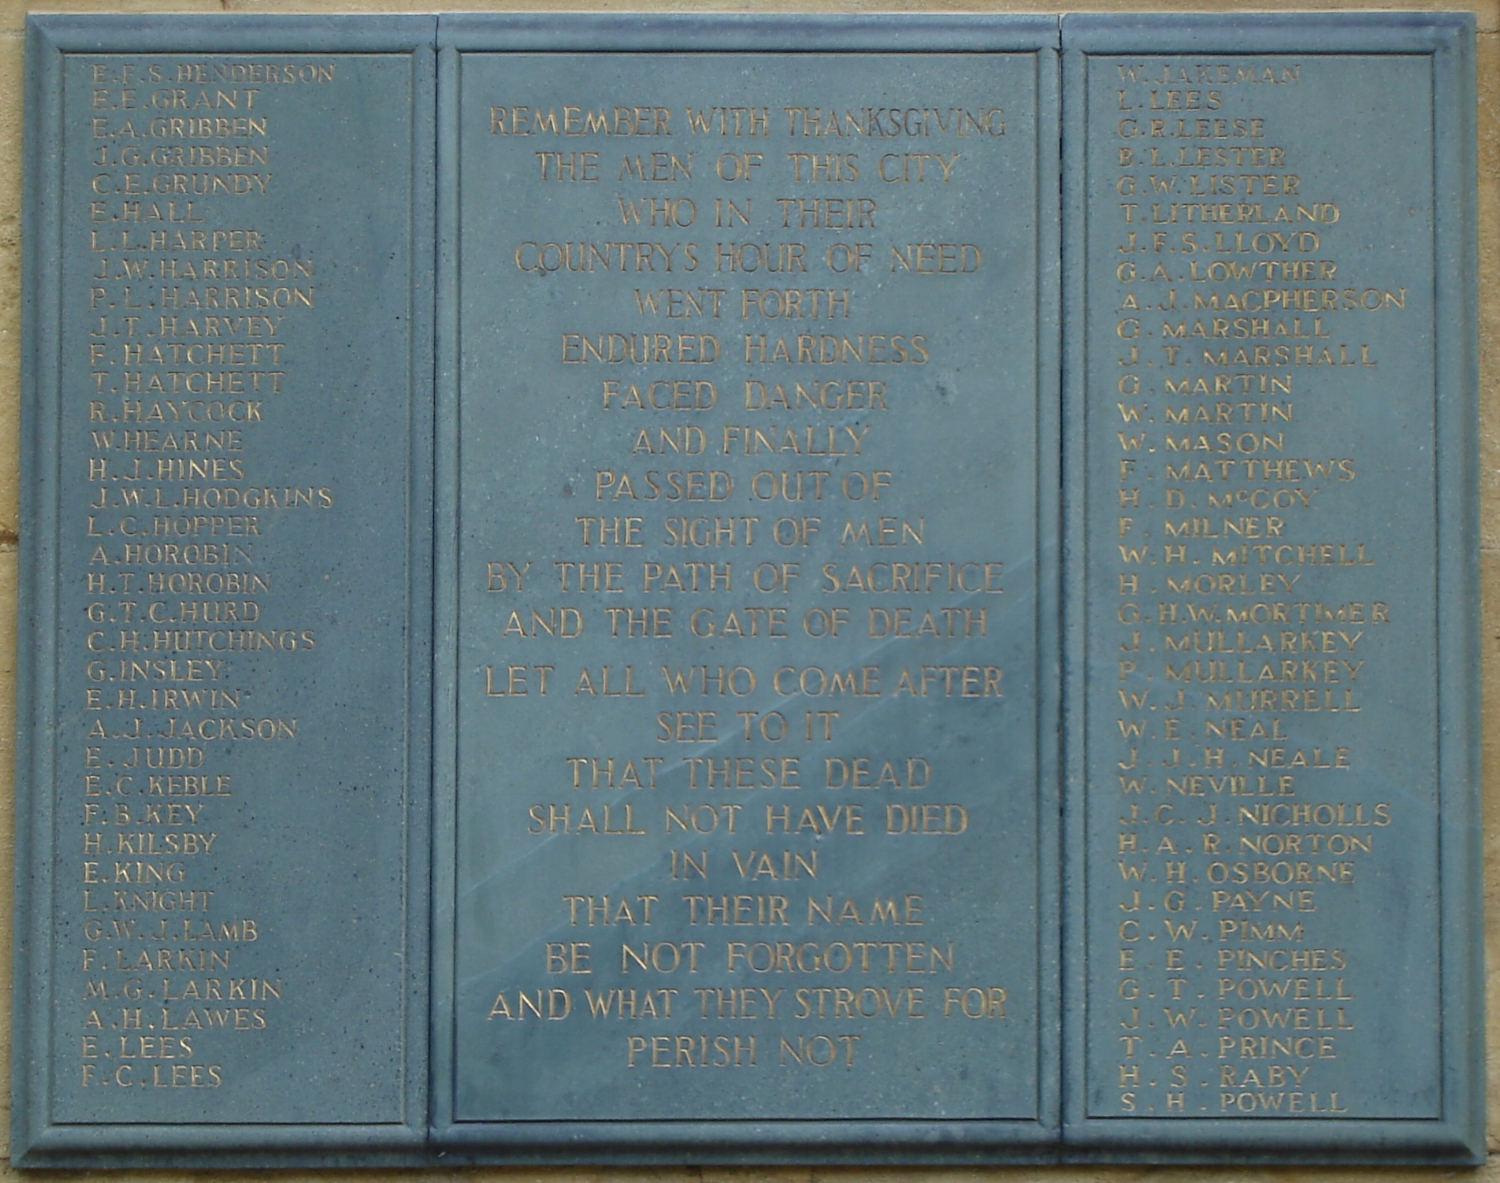 Lichfield War Memorial panel containing the dedication to Walter Mason